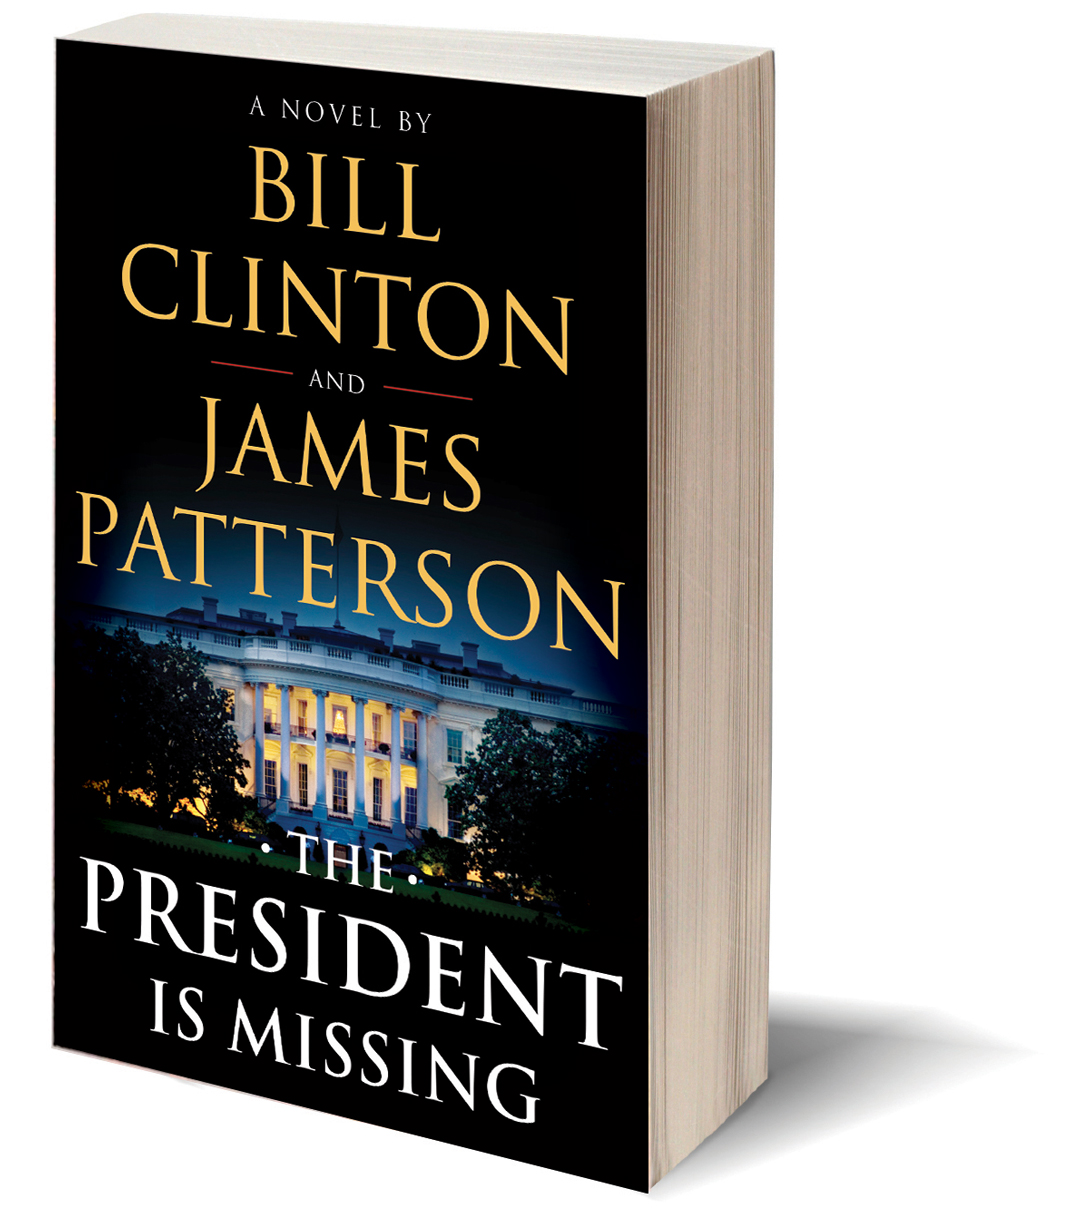 Bill Clinton and James Patterson book